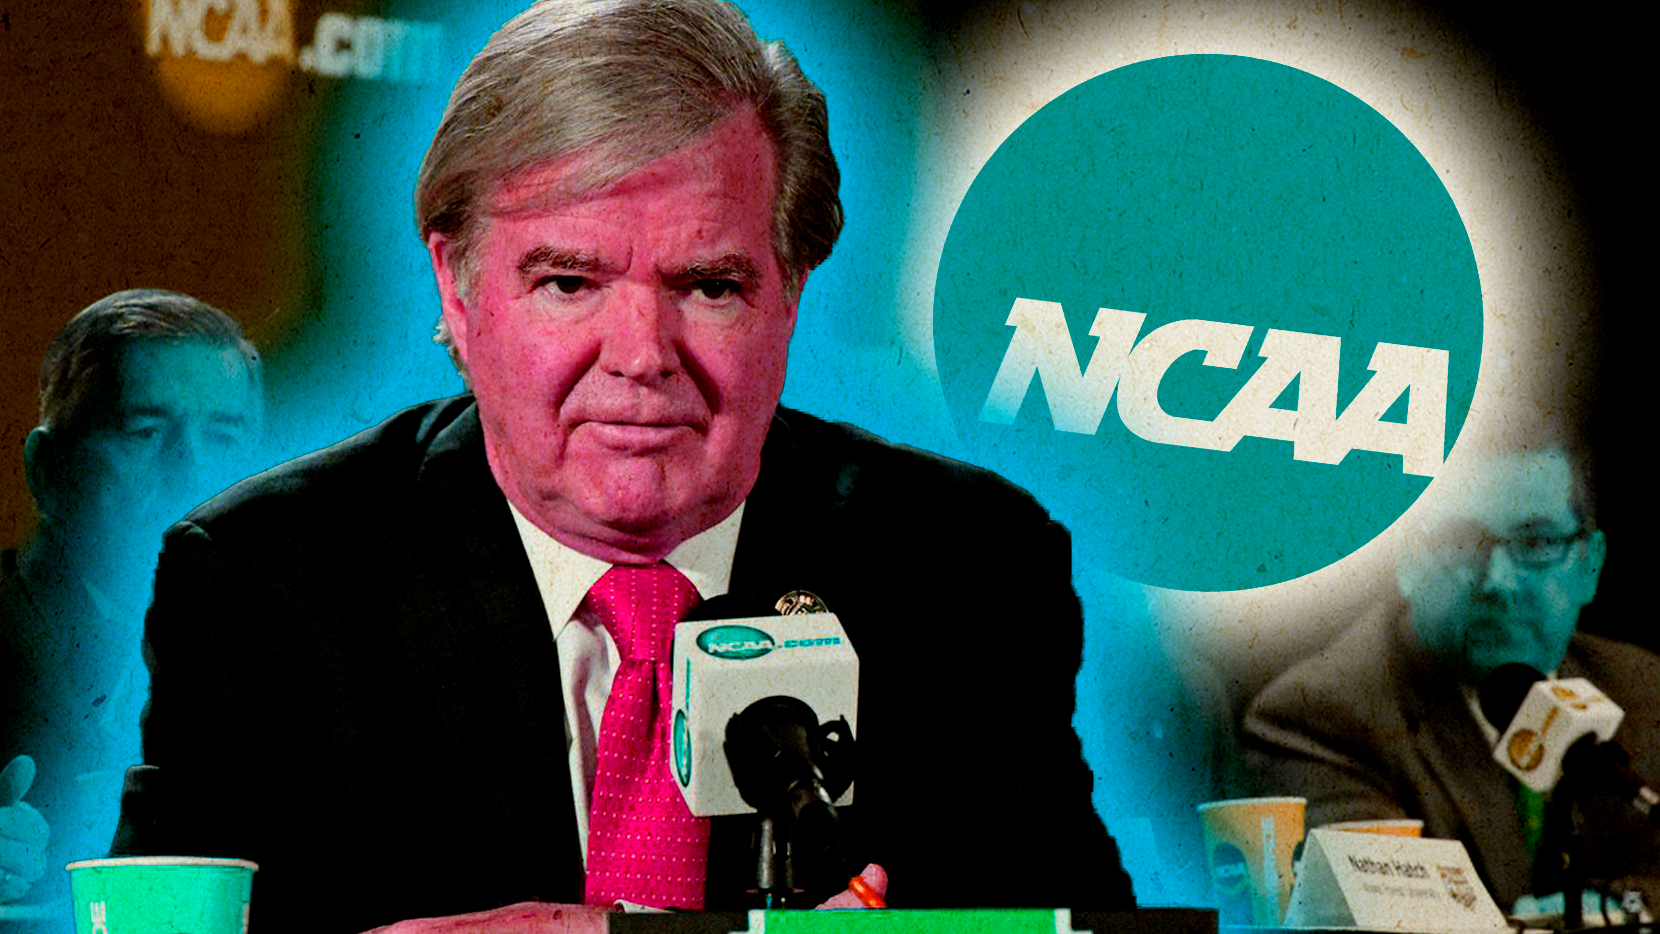 NCAA Calls for Constitutional Convention to Discuss Potential Overhaul of College Sports.